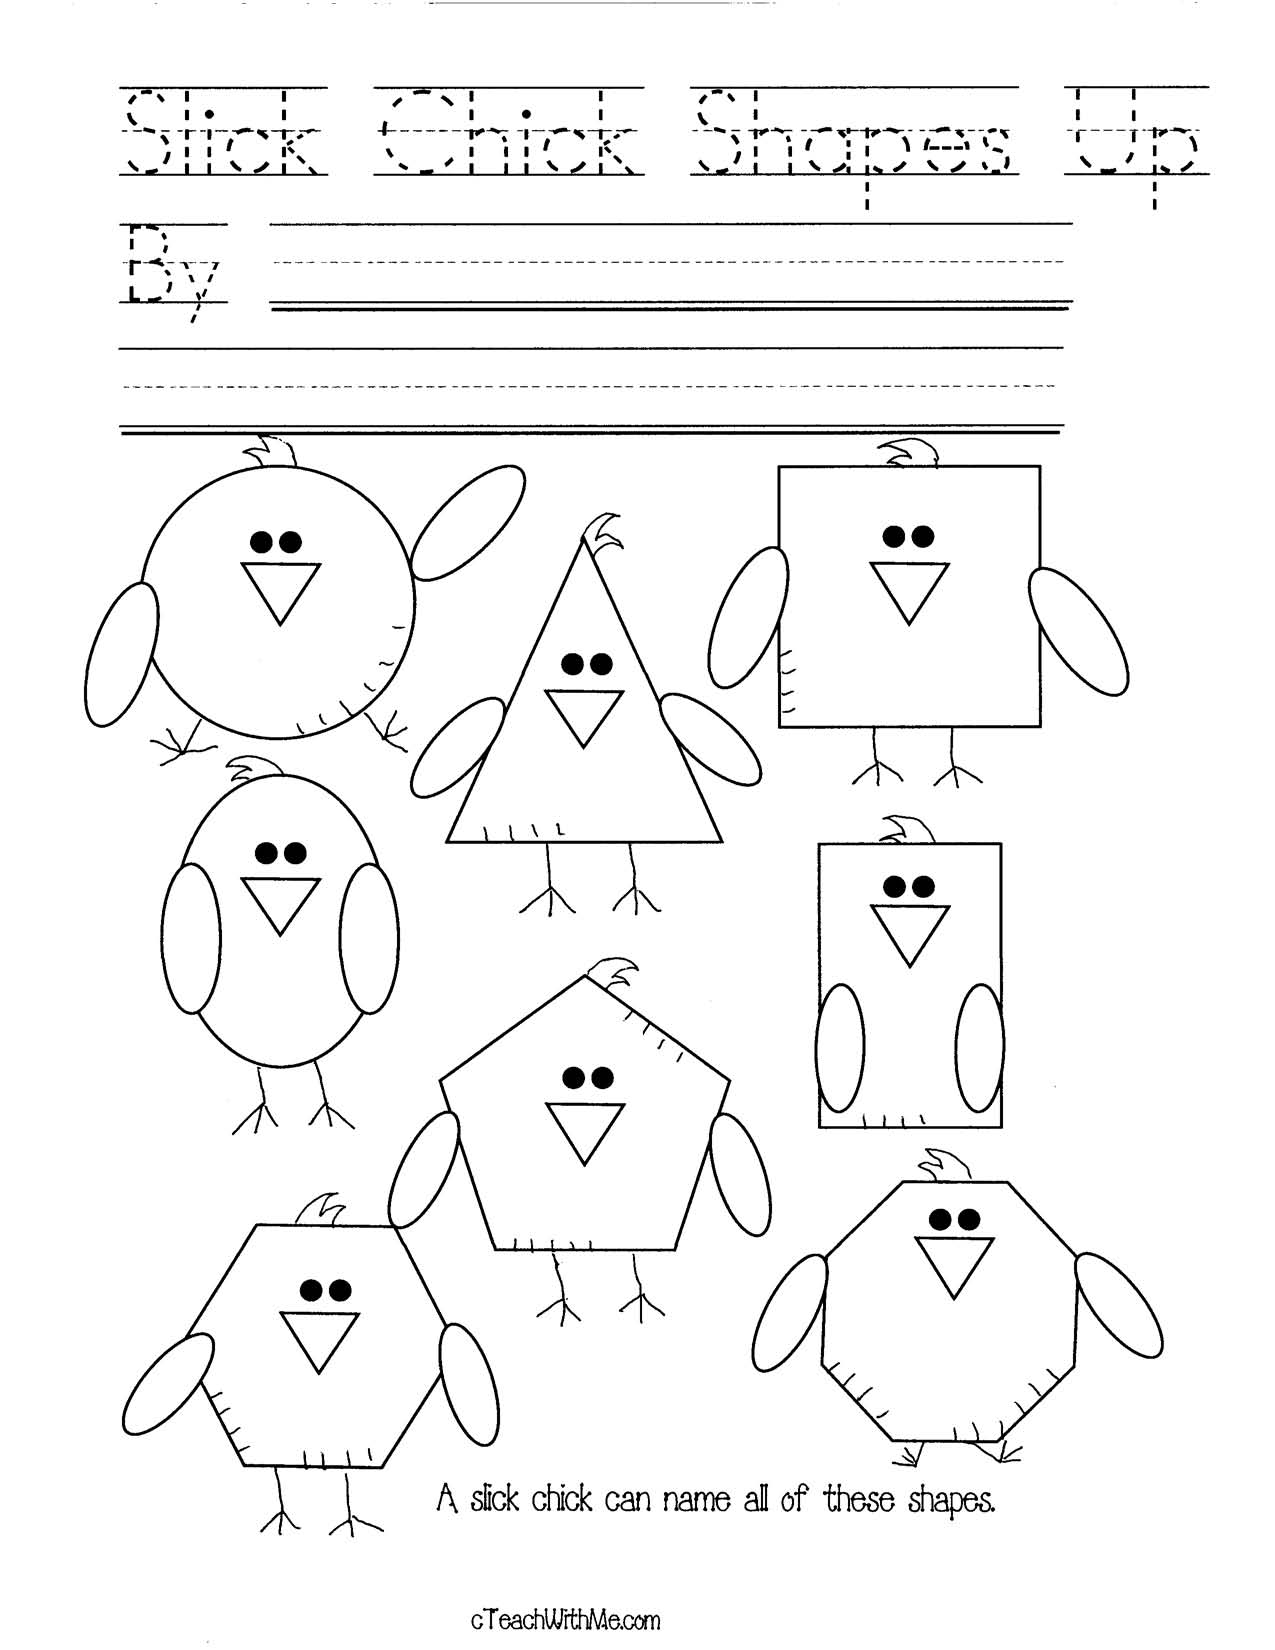 chick crafts, spring baby animal crafts, shape activities, shape crafts, 2D shape activities, 3D shape activities, pattern block activities, hexagon activities, trapezoid activities, rhombus activities, shape booklet, vertices activities, common core shapes, common core spring, spatial direction activities, shape games, shape cards, shape word activities, spring bulletin boards, shape bulletin boards